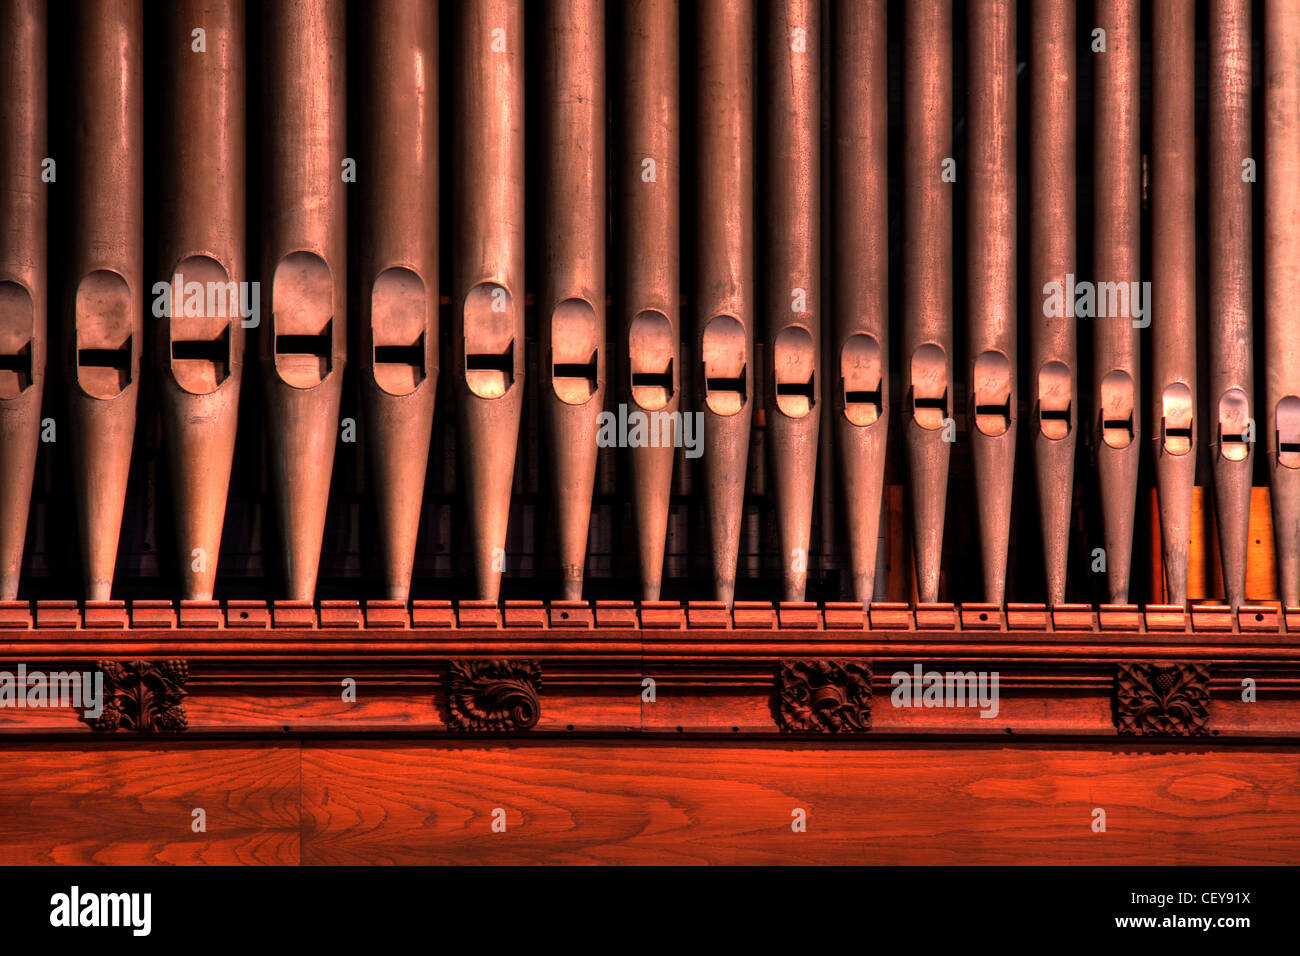 Organ pipes from Details from Middlewich St Michael and All Angels Church CW10 9AN - Stock Image